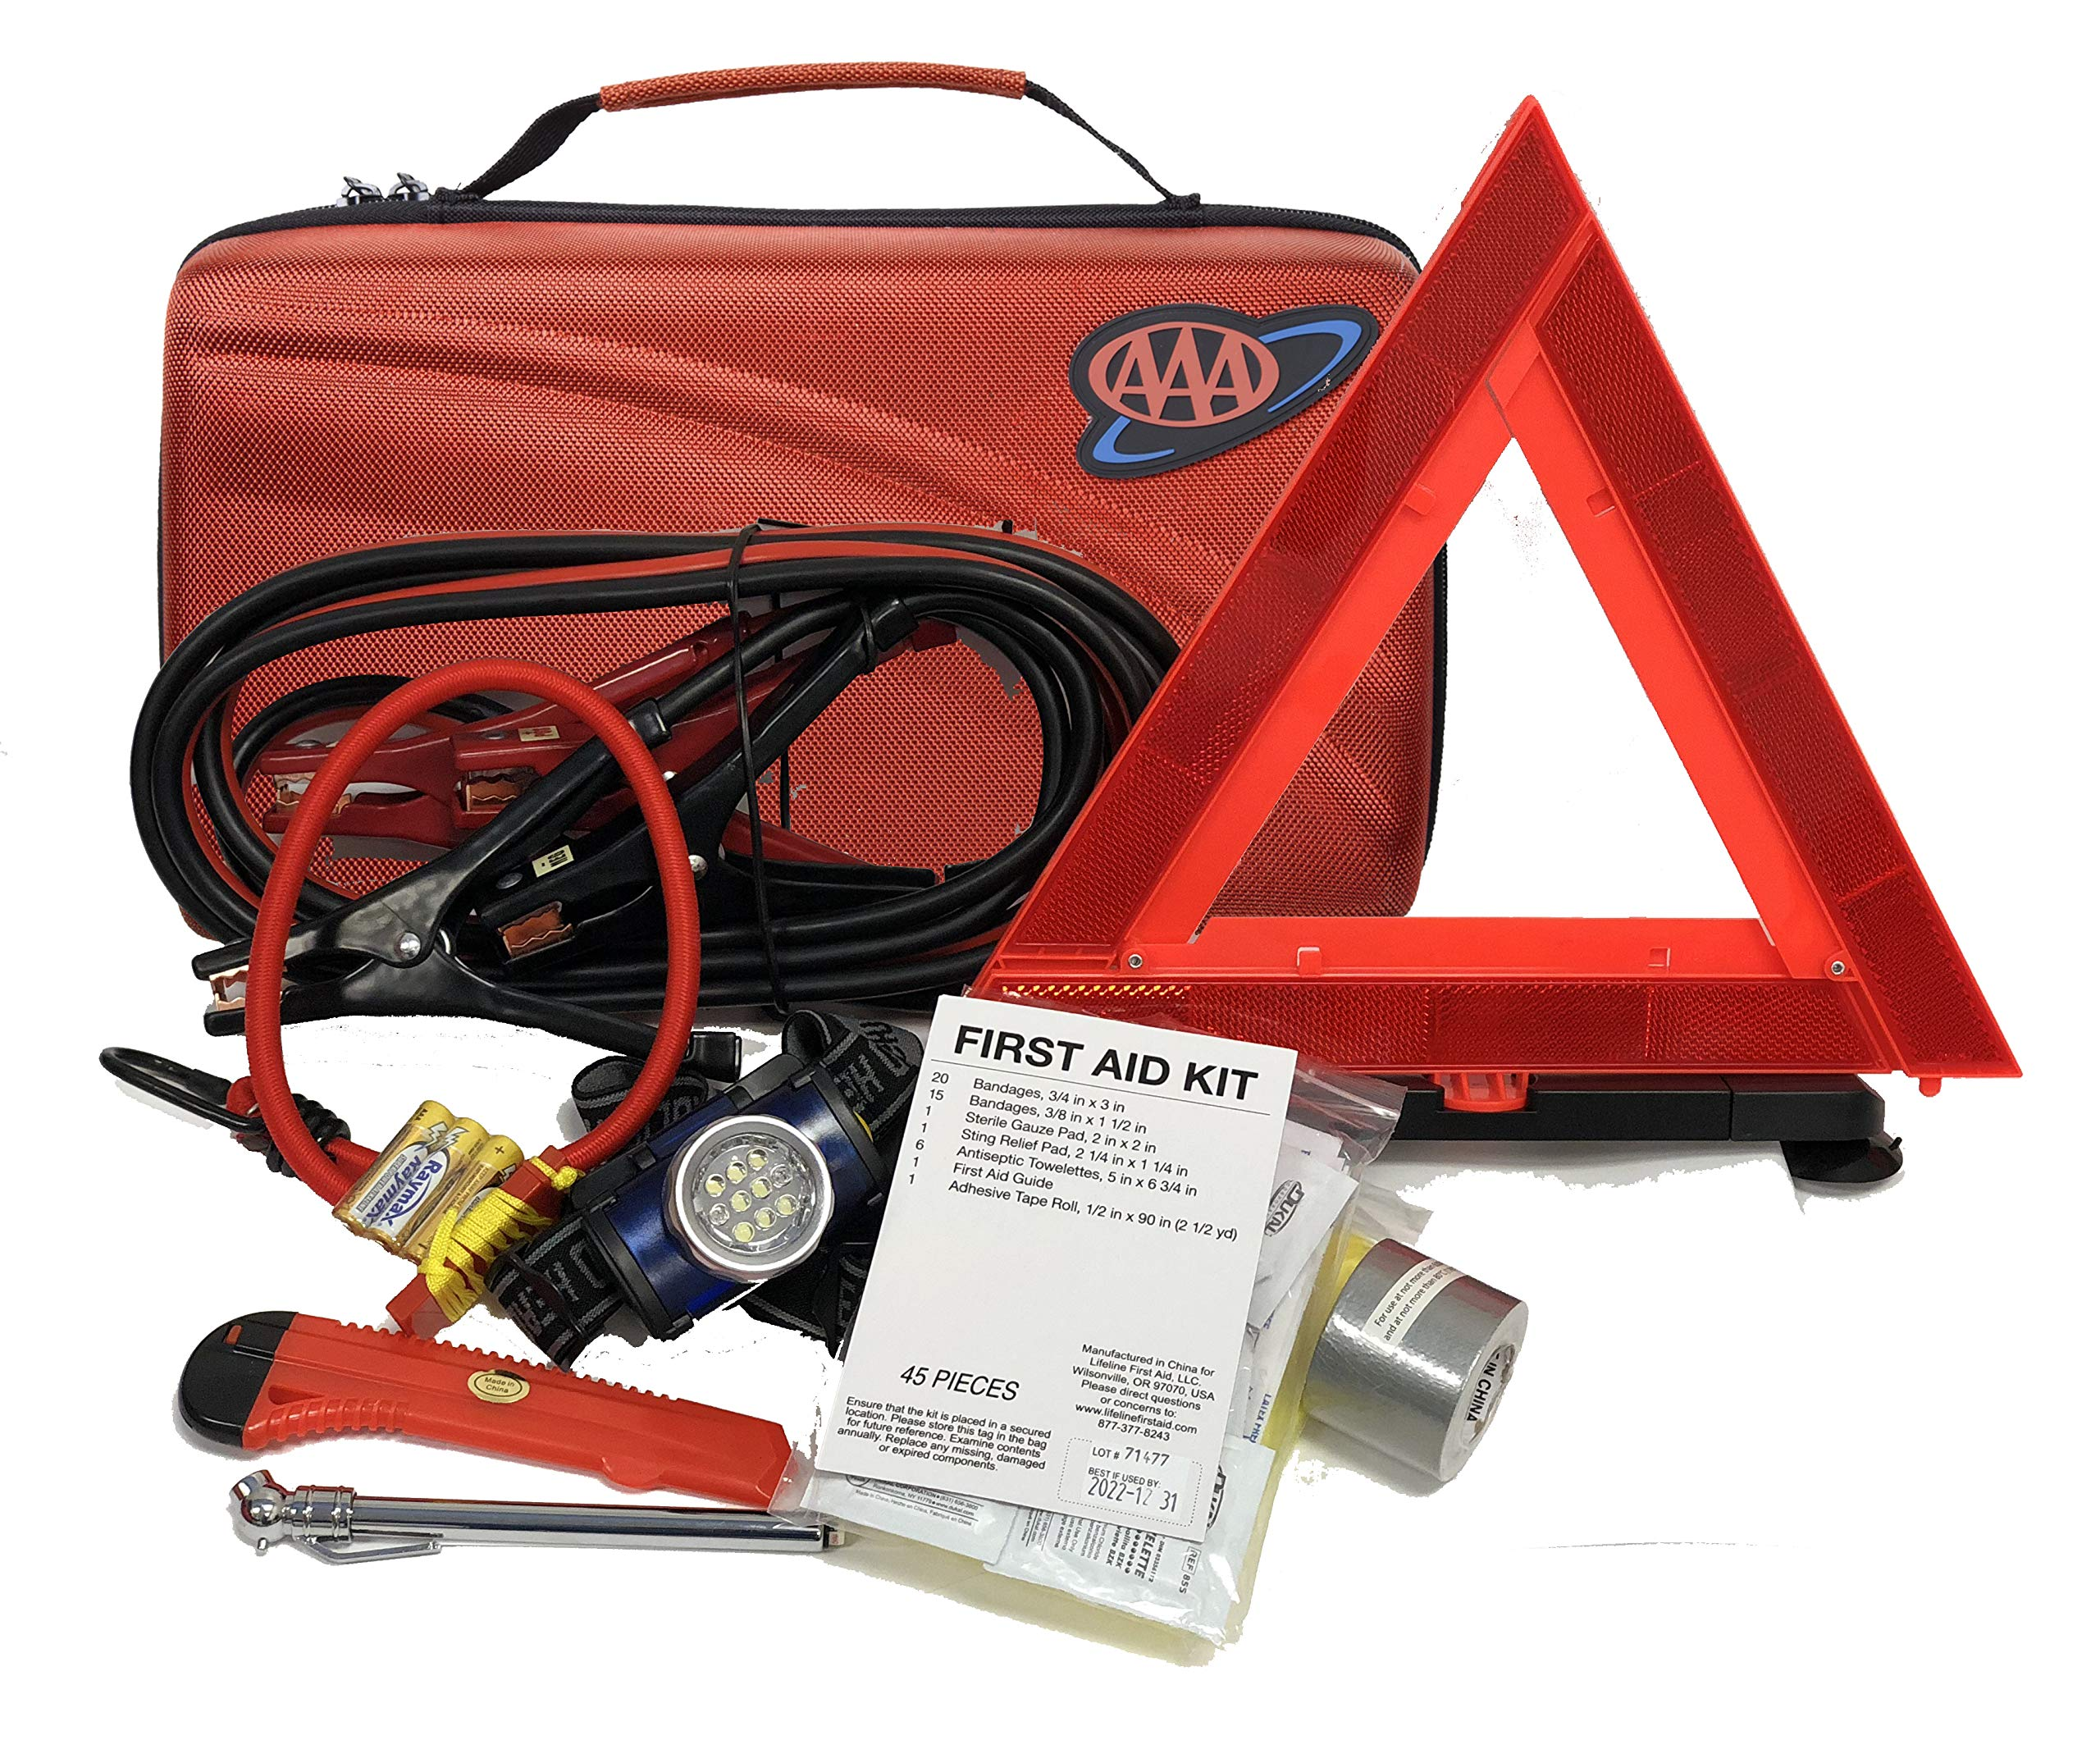 Lifeline 4366AAA 67Pc AAA Executive Road, 67 Piece Emergency Car Jumper Cables, Headlamp, Warning Triangle and First Aid Kit